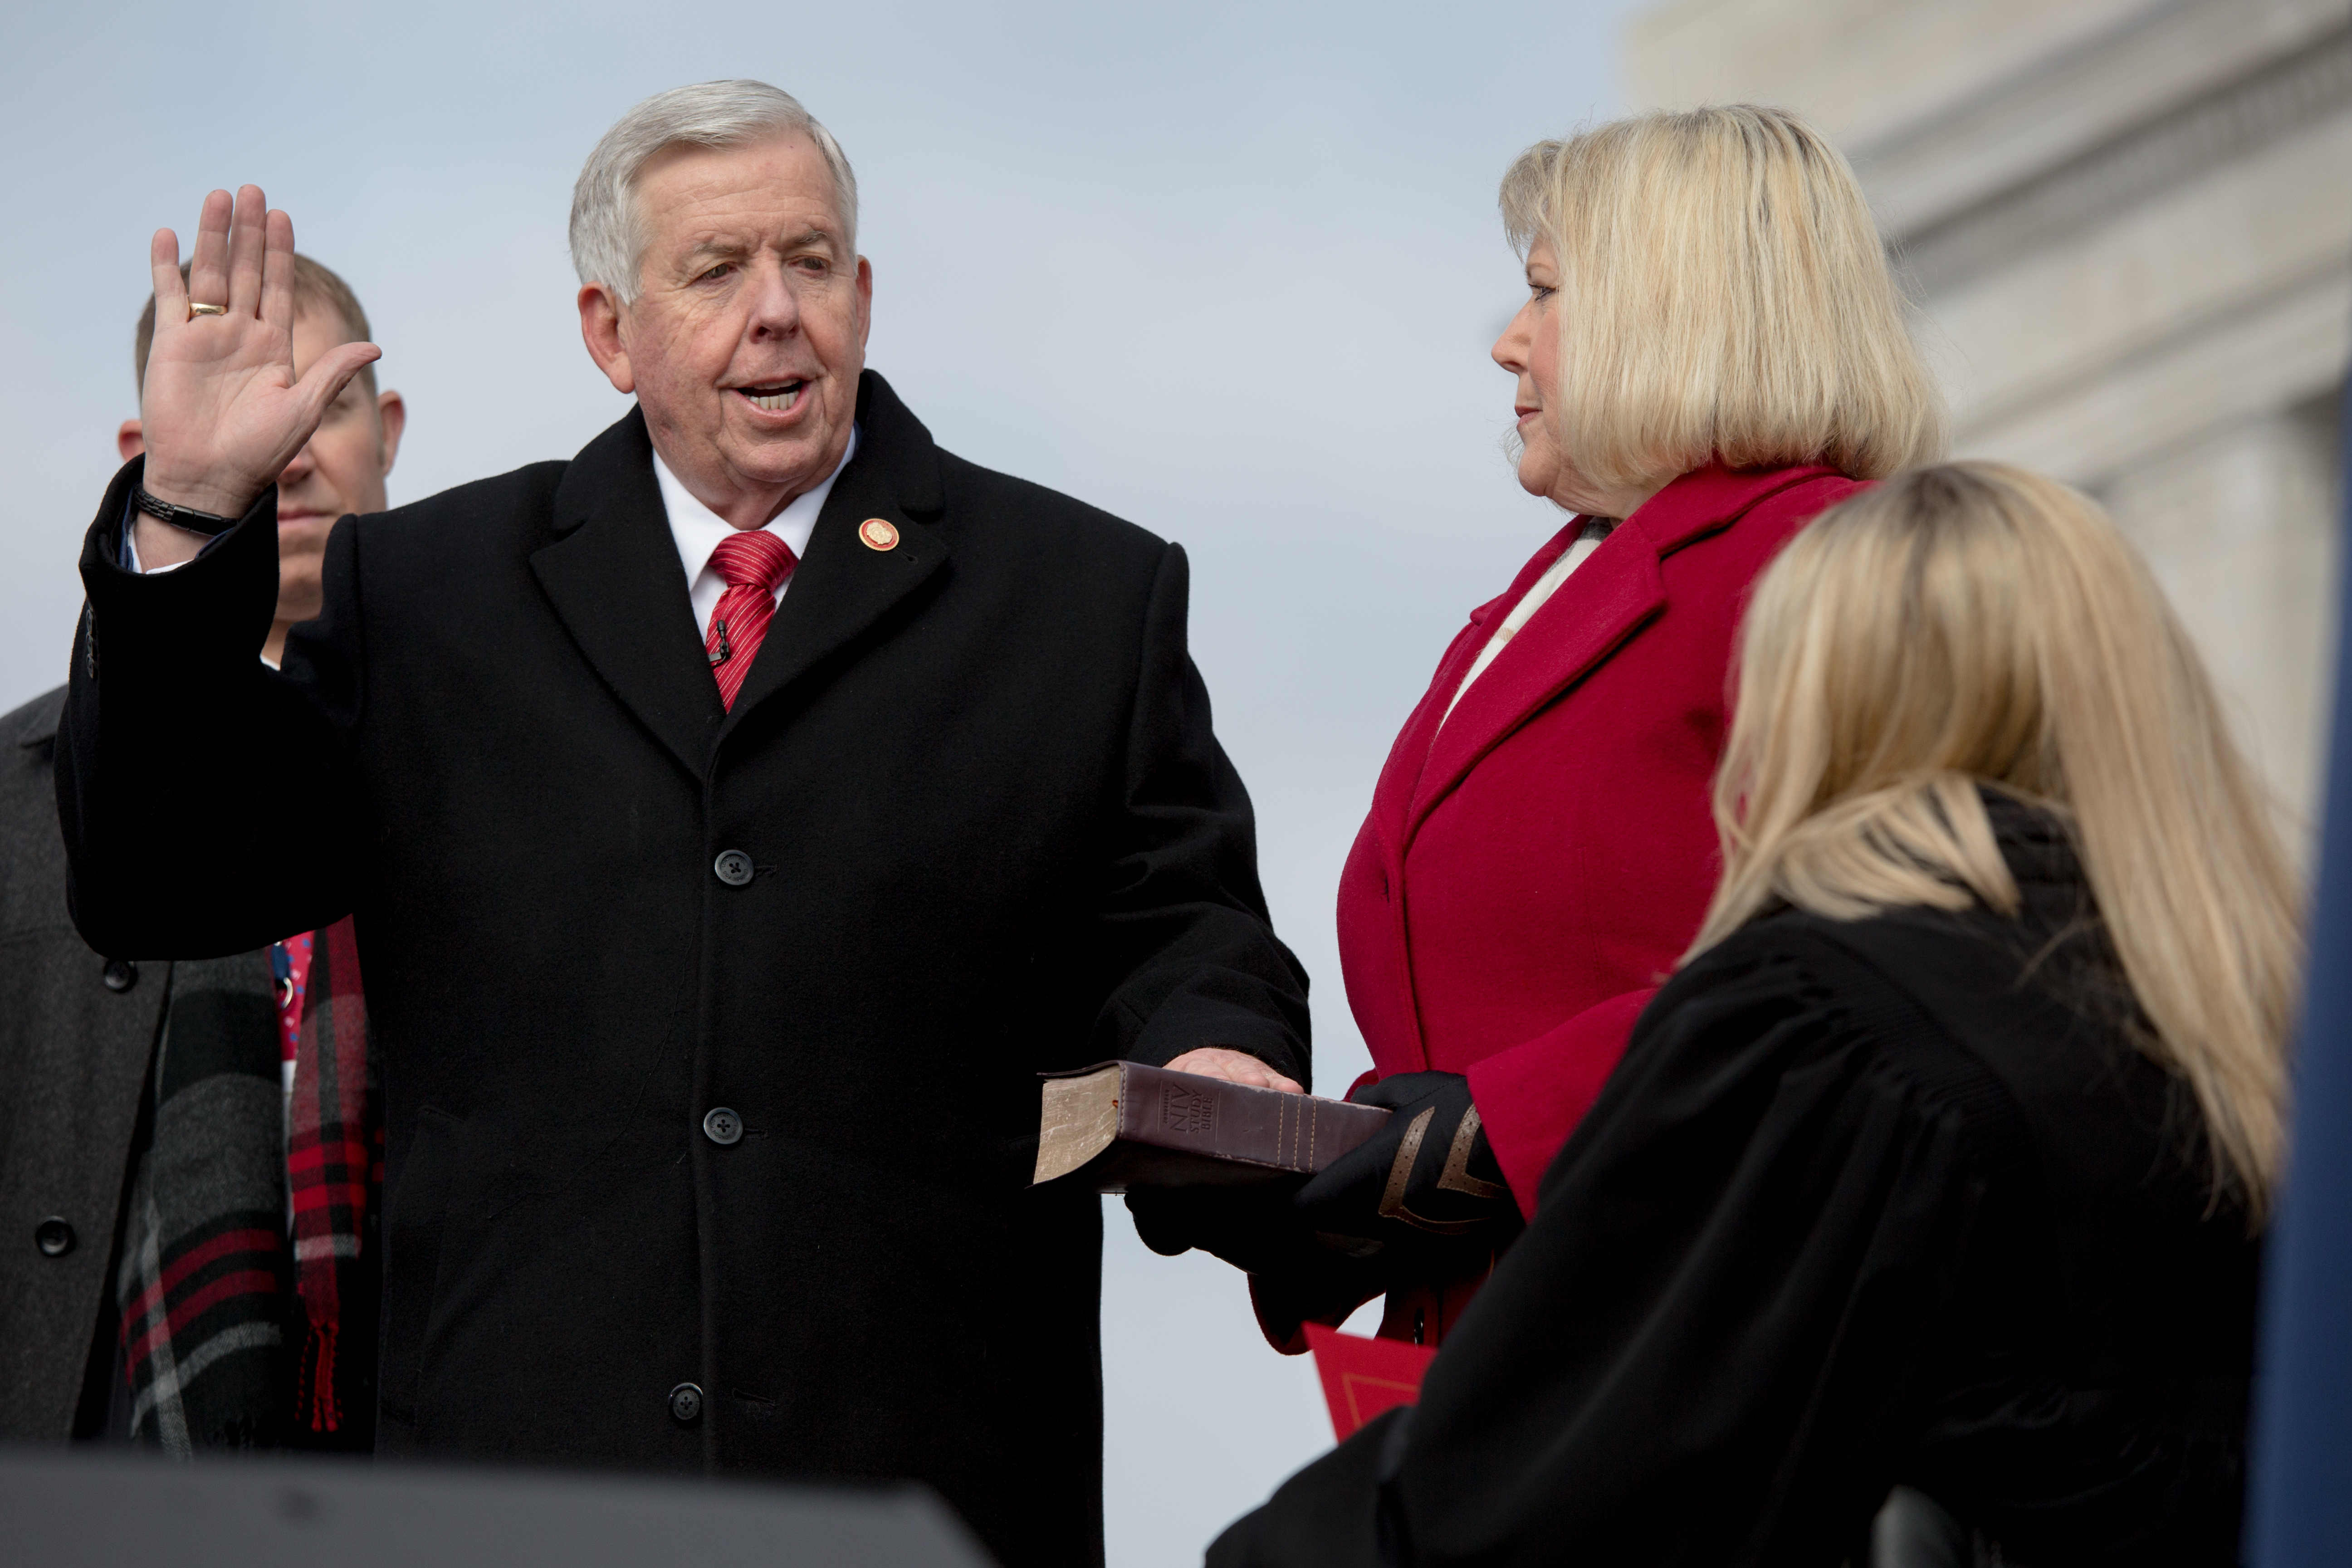 Parson, Missouri GOP Statewide Officials Embark On 4-Year Terms Amid Pandemic Calamity